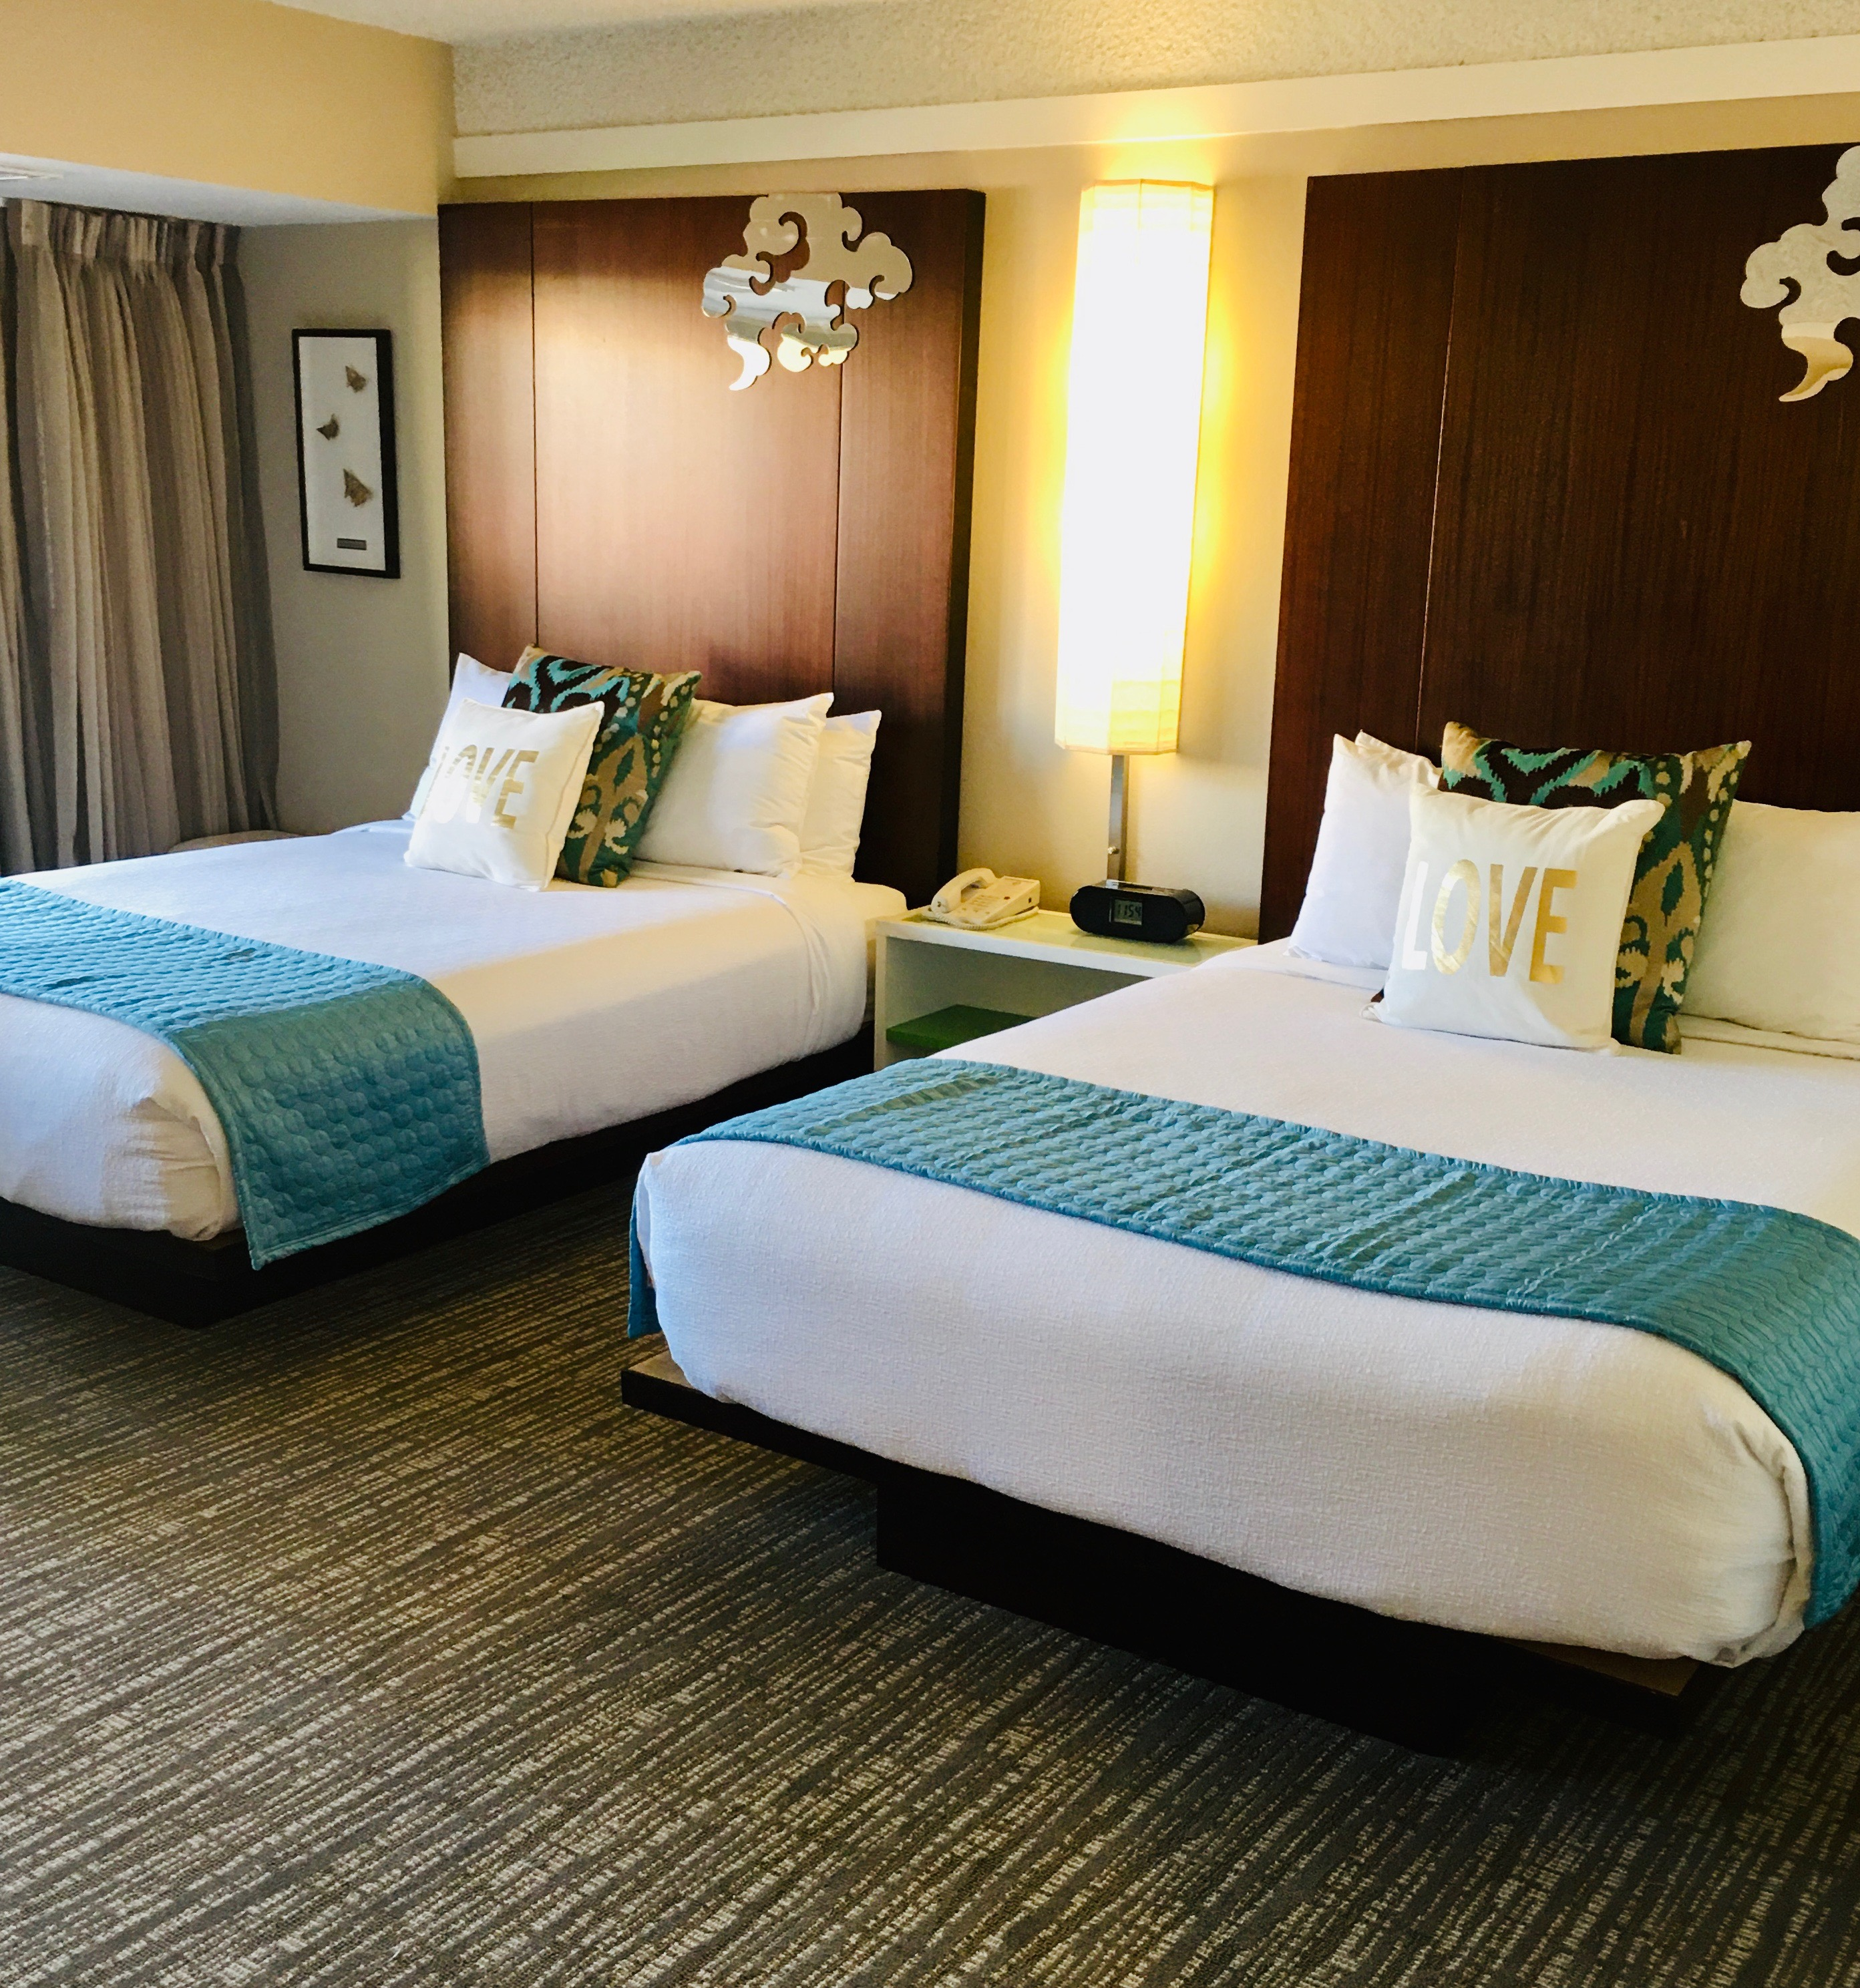 DELUXE DOUBLE BEDS POOL VIEW